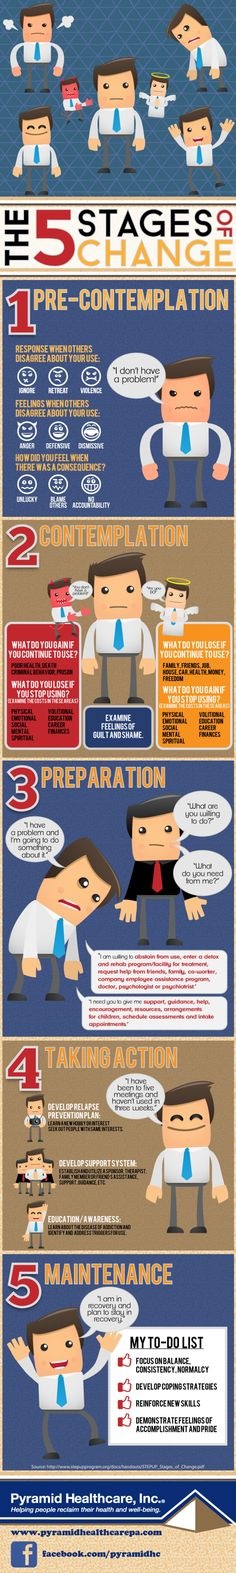 The 5 Stages of Change (drug & alcohol addiction) #infographic